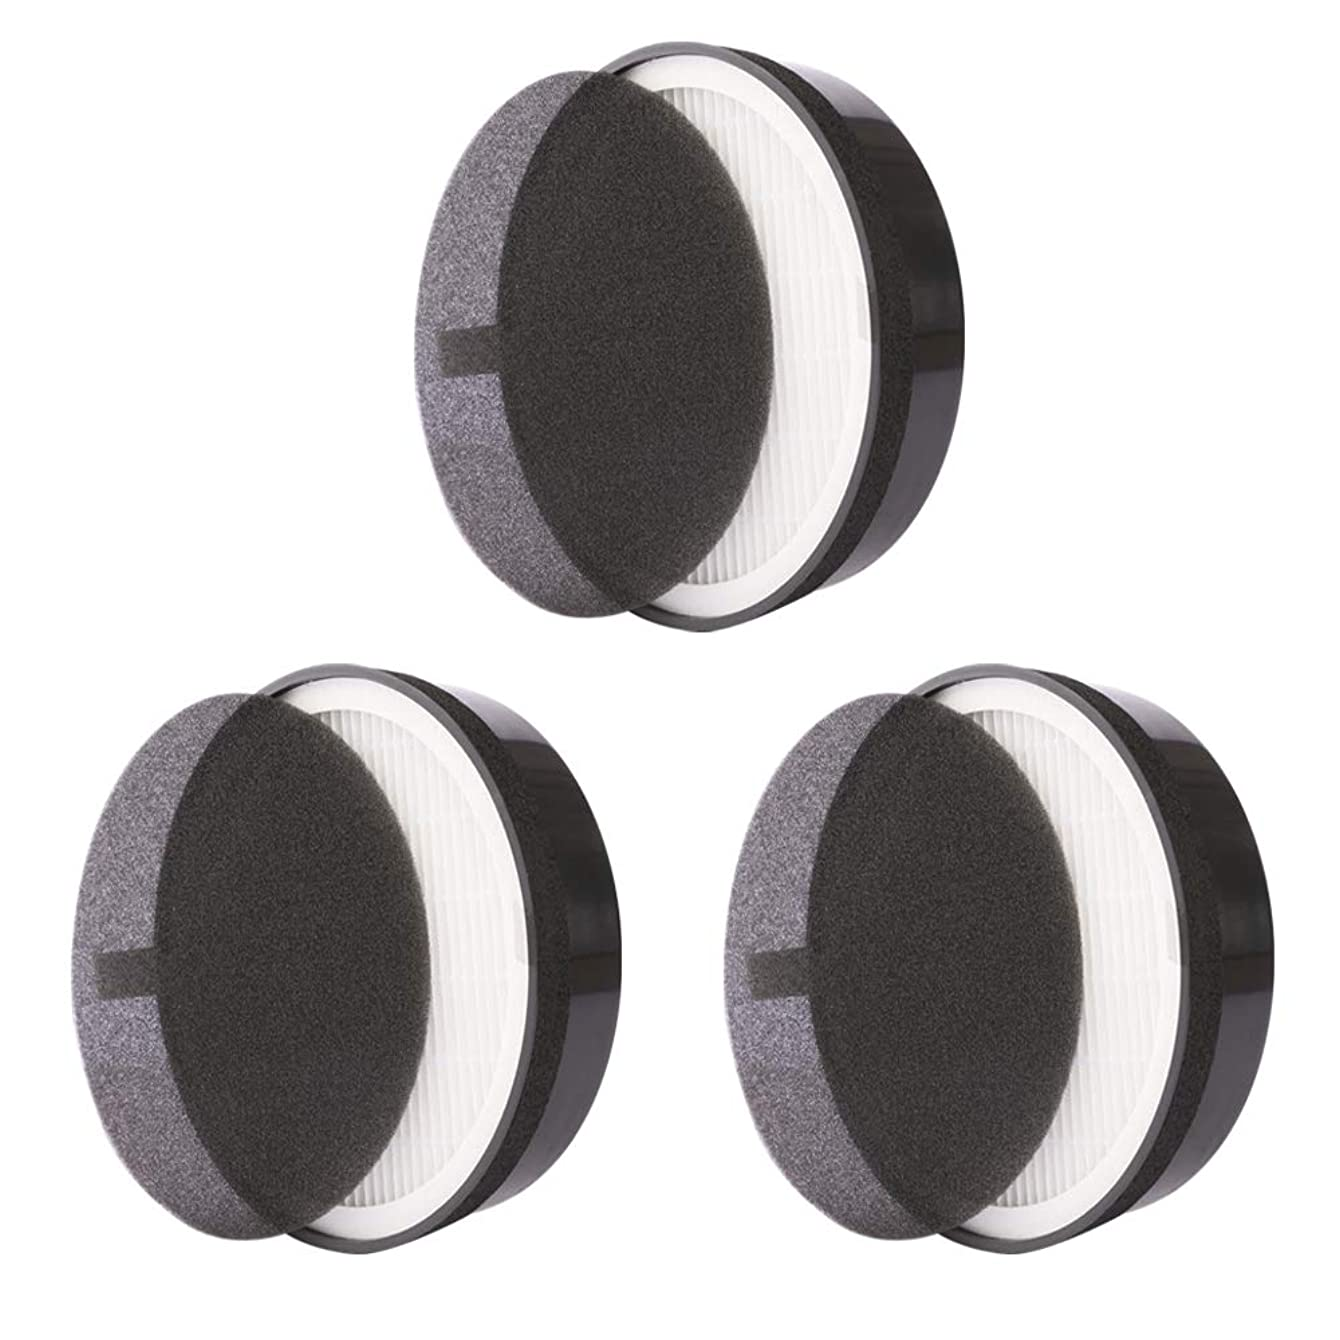 Replacement Filter, for Levoit LV-H132, Particle and Activated Carbon Filter for Dust and Odor, 3 Pack